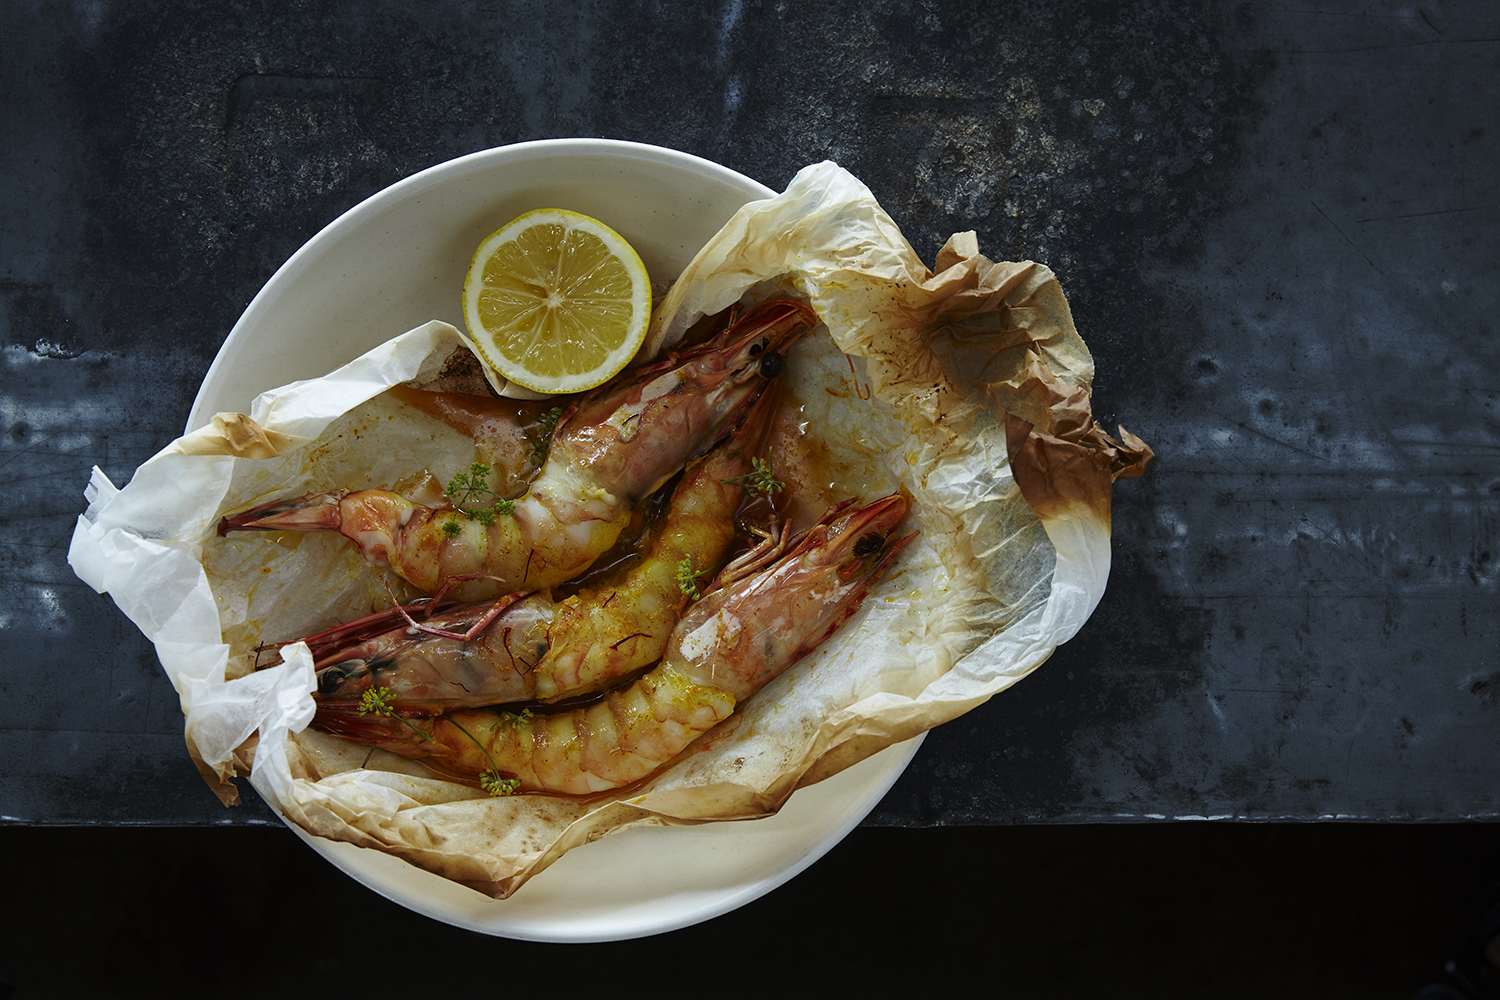 Tiger Prawns-photo courtesy of Petrina Tinslay